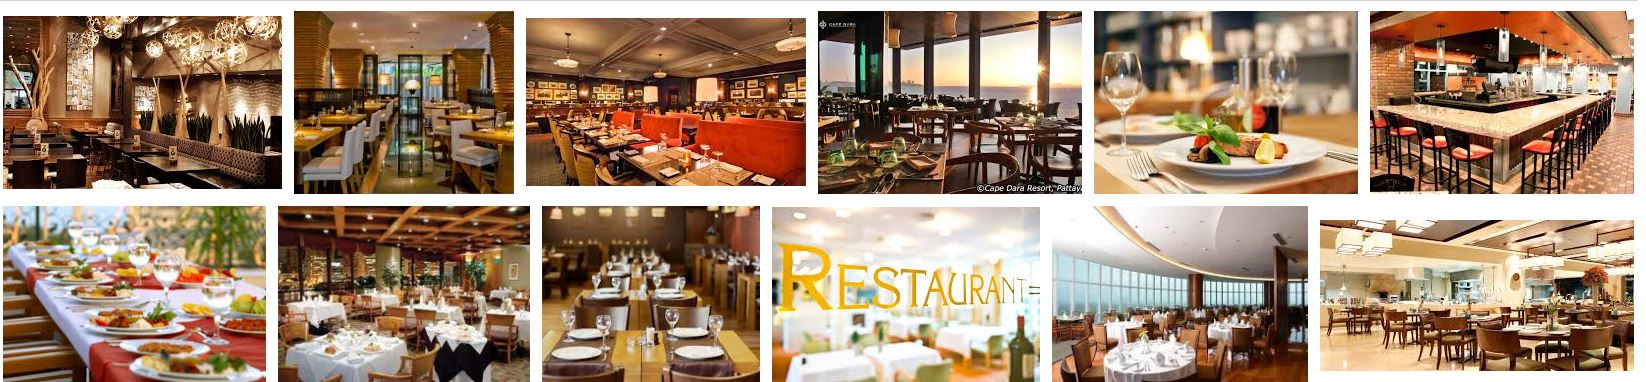 Online Restaurant Reviews